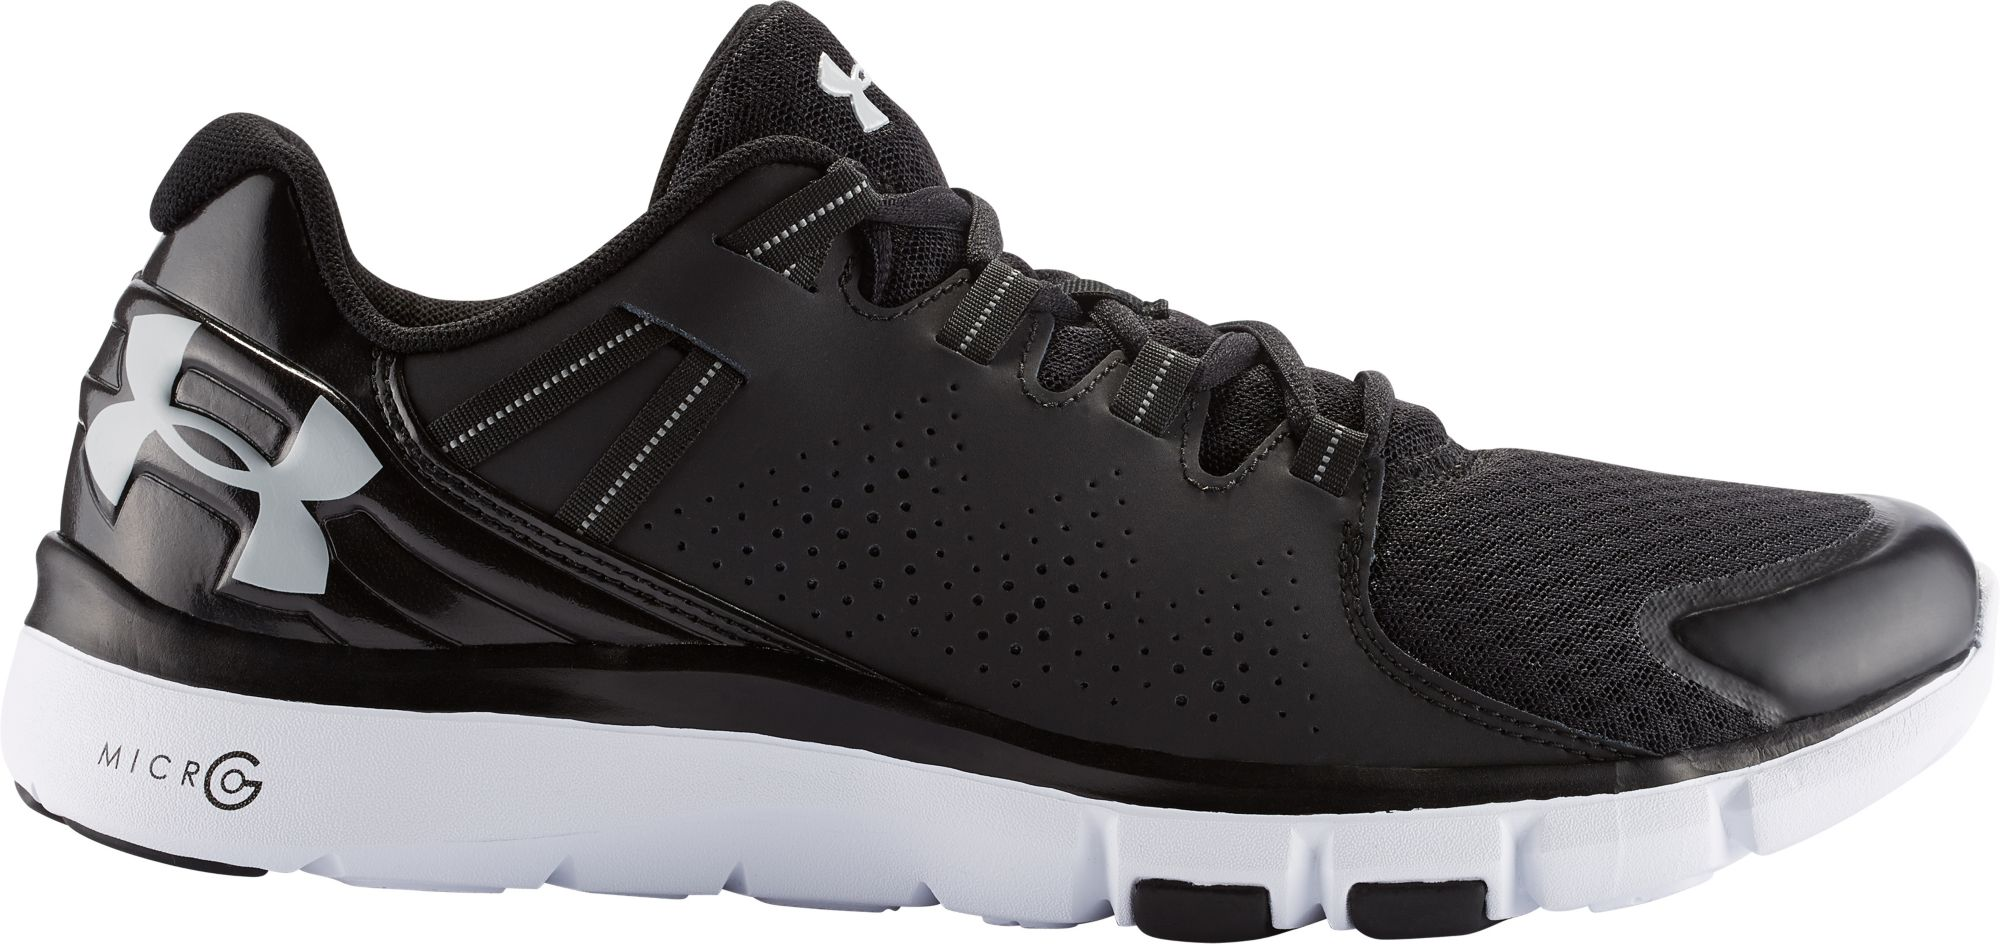 Sous Chaussures Armour Micro G 6mdoWZe